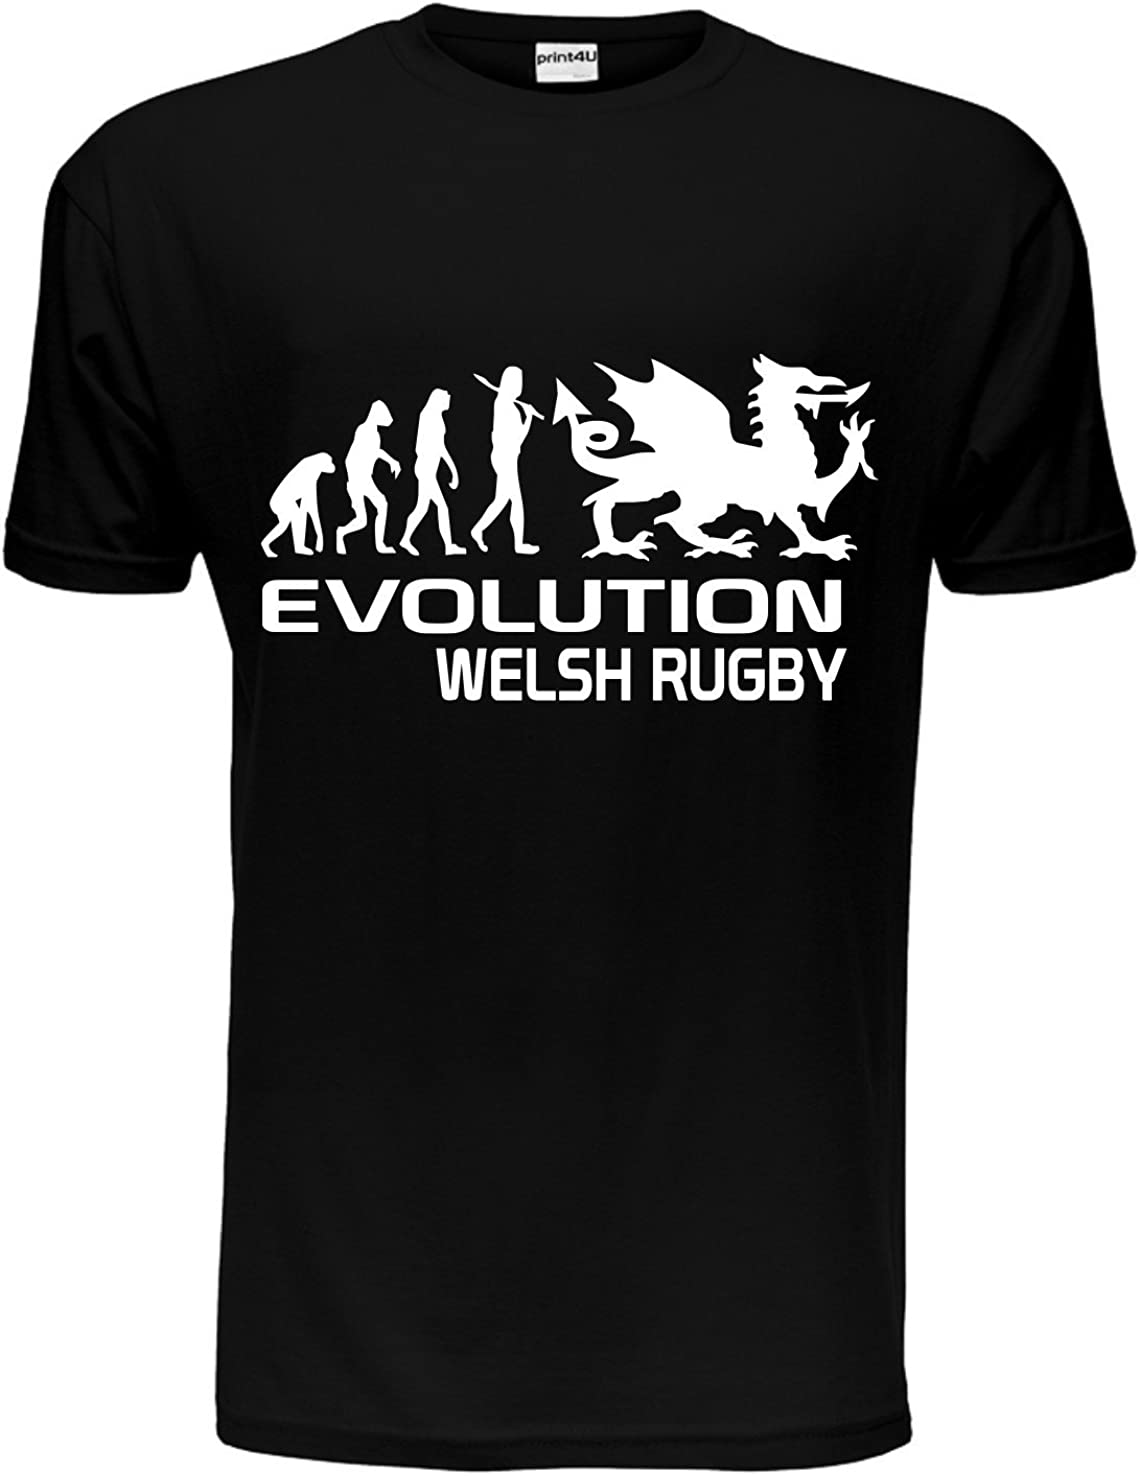 Cymru Tshirt Red Wales Tshirt Rugby Results Champions 2019 T-Shirt Tee Top Mens Womens Kids